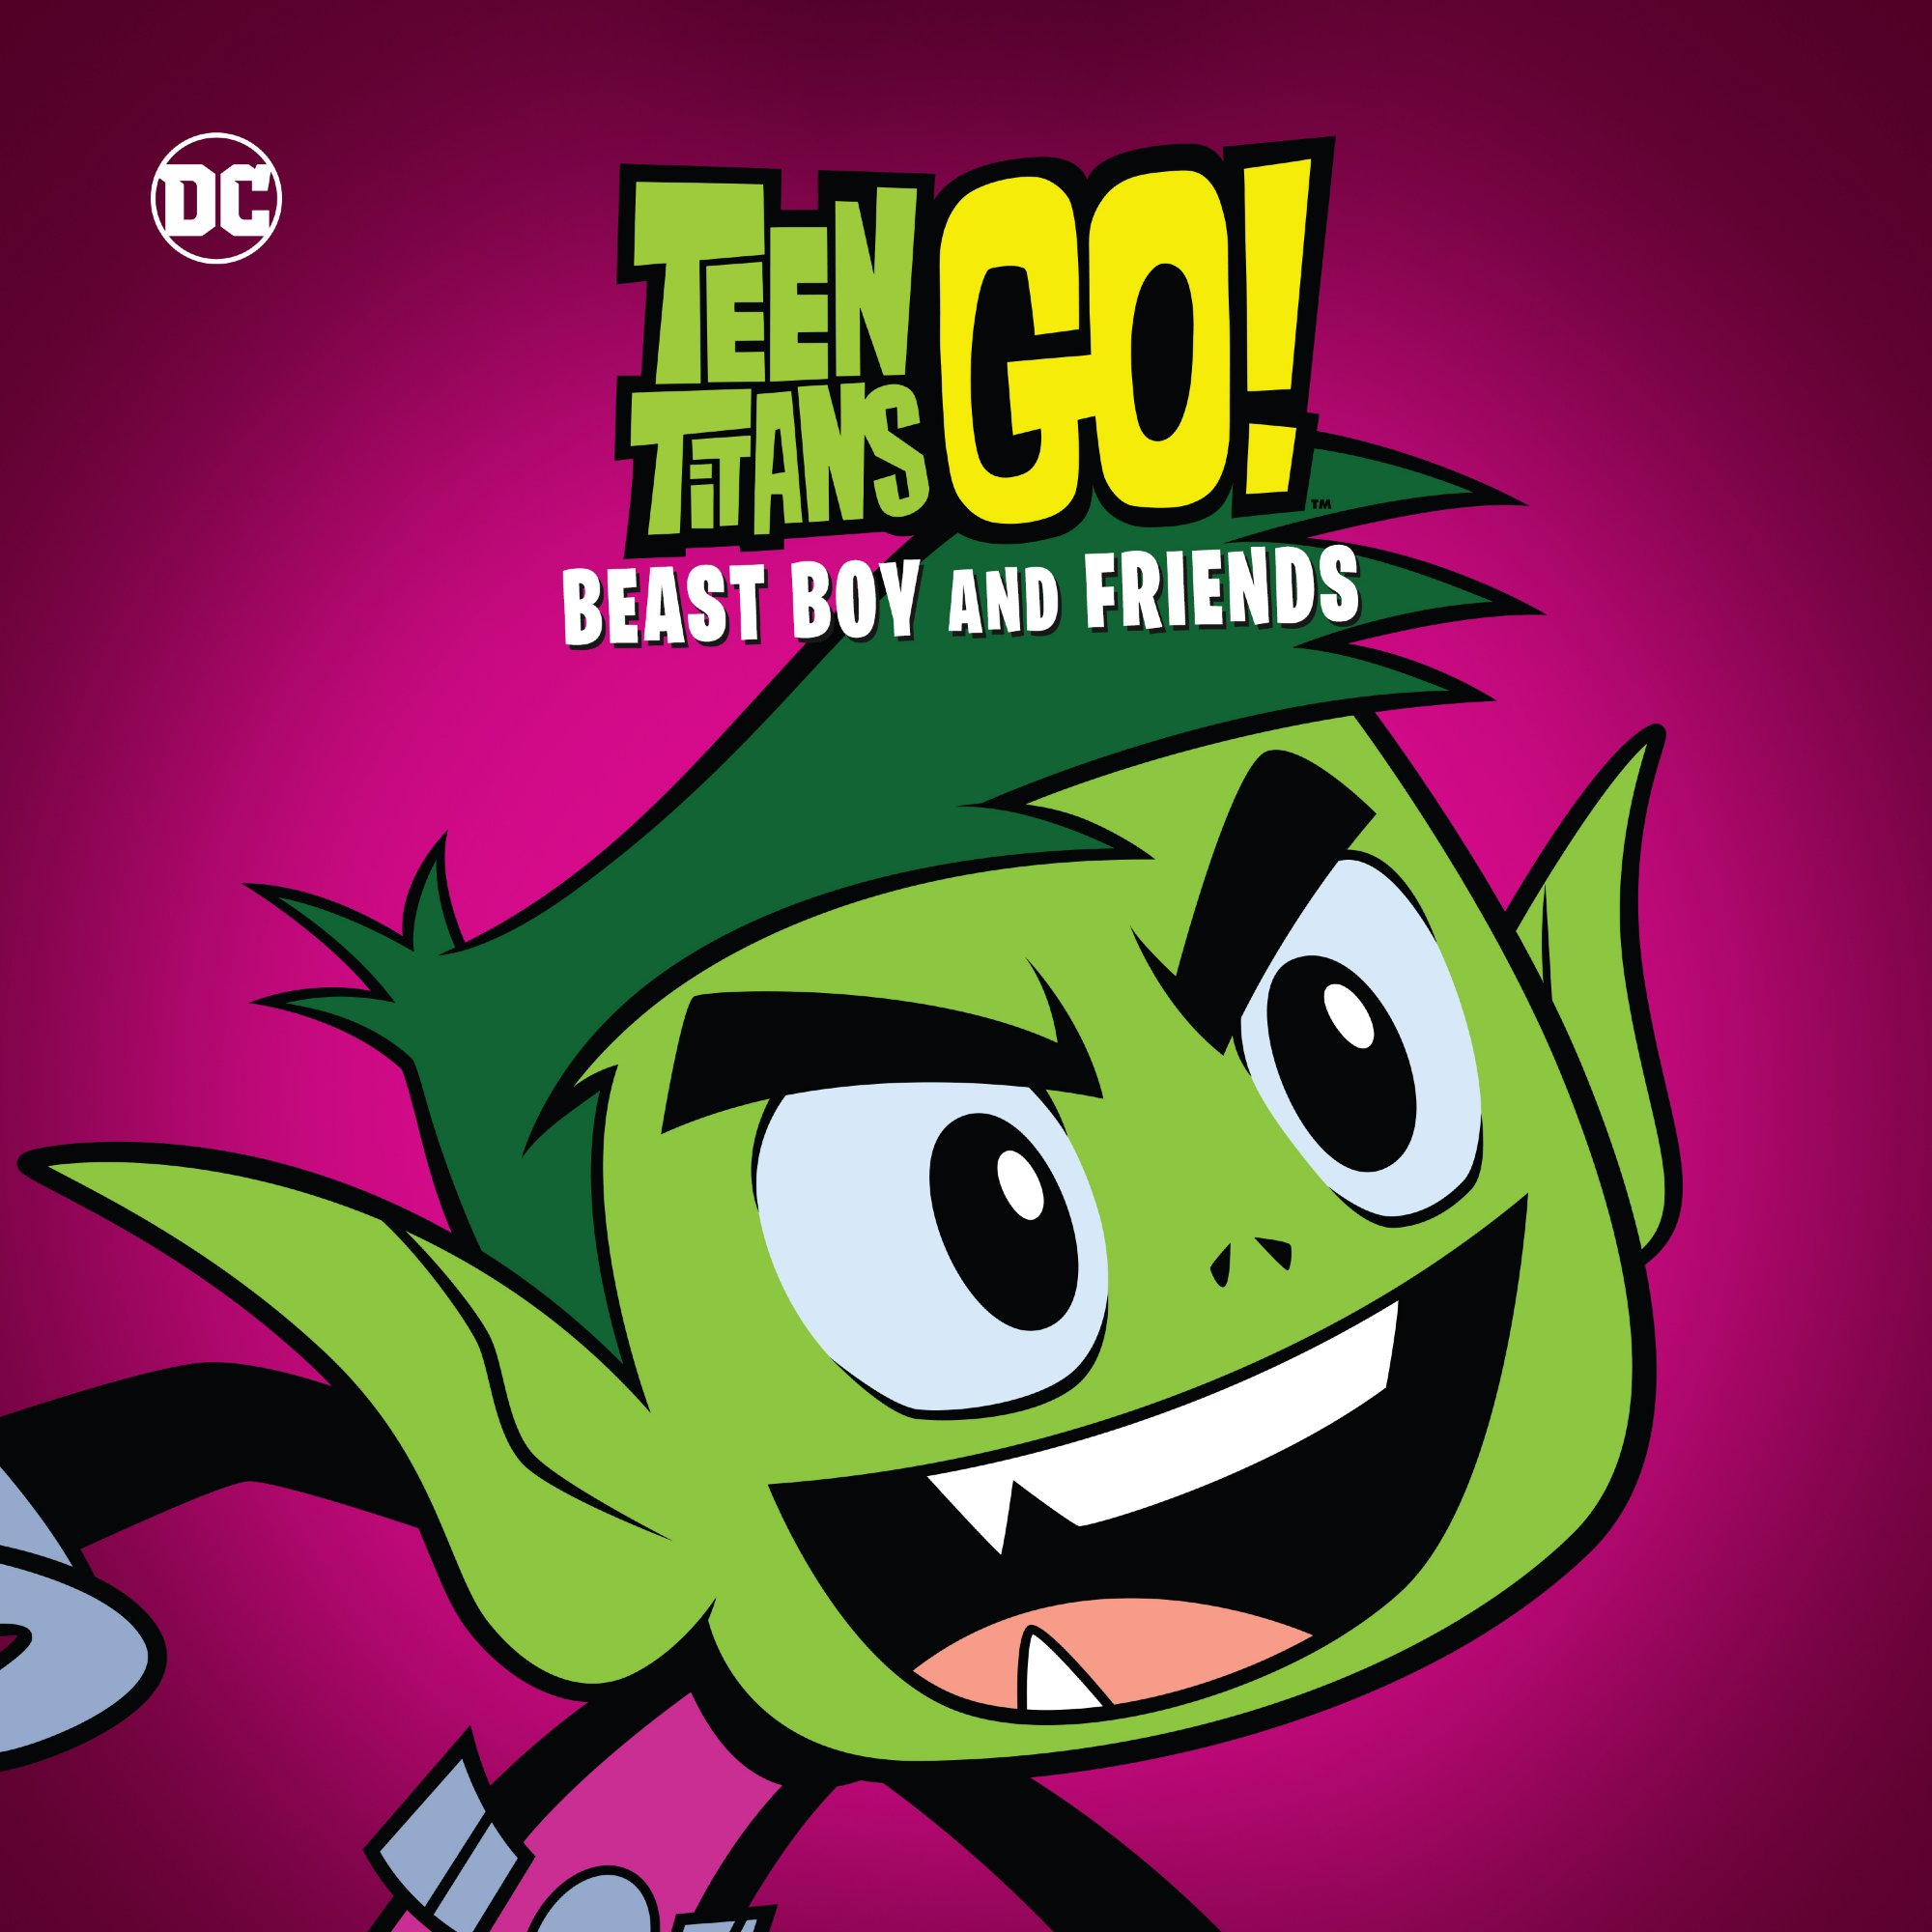 Teen Titans Go! Beast Boy and Friends